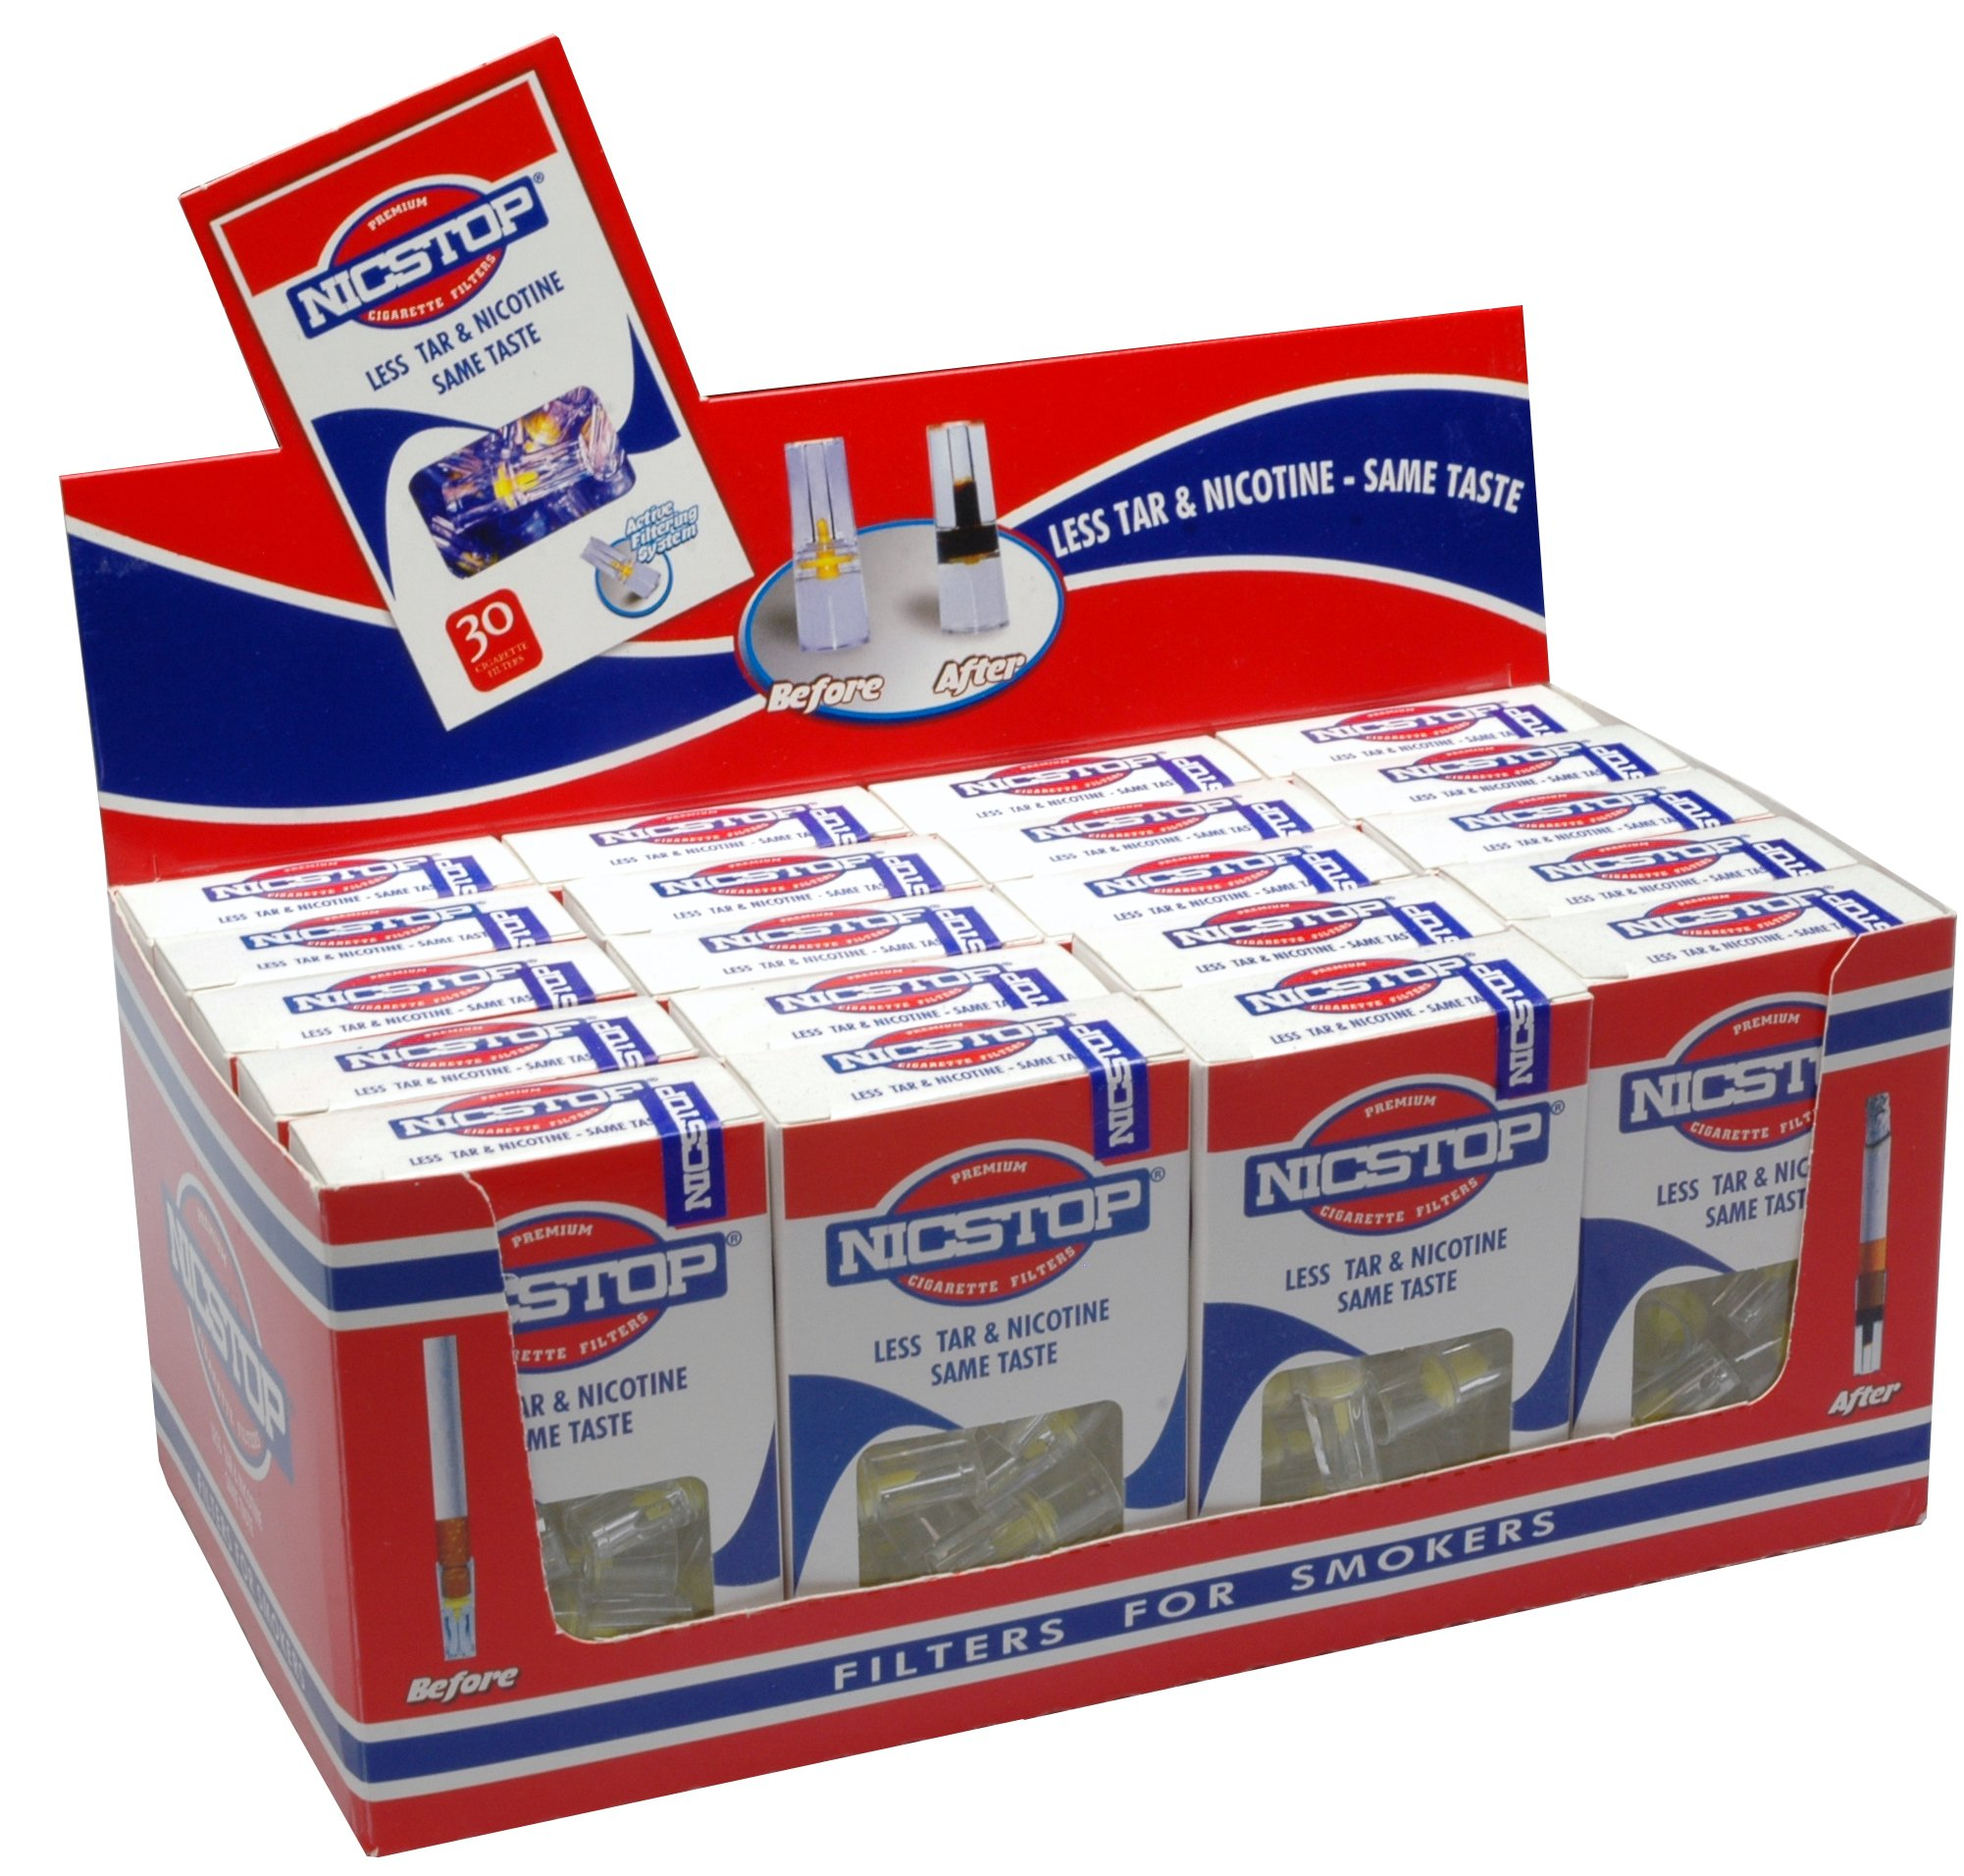 NICSTOP Cigarette Filters 20 Pack (600 Filters)